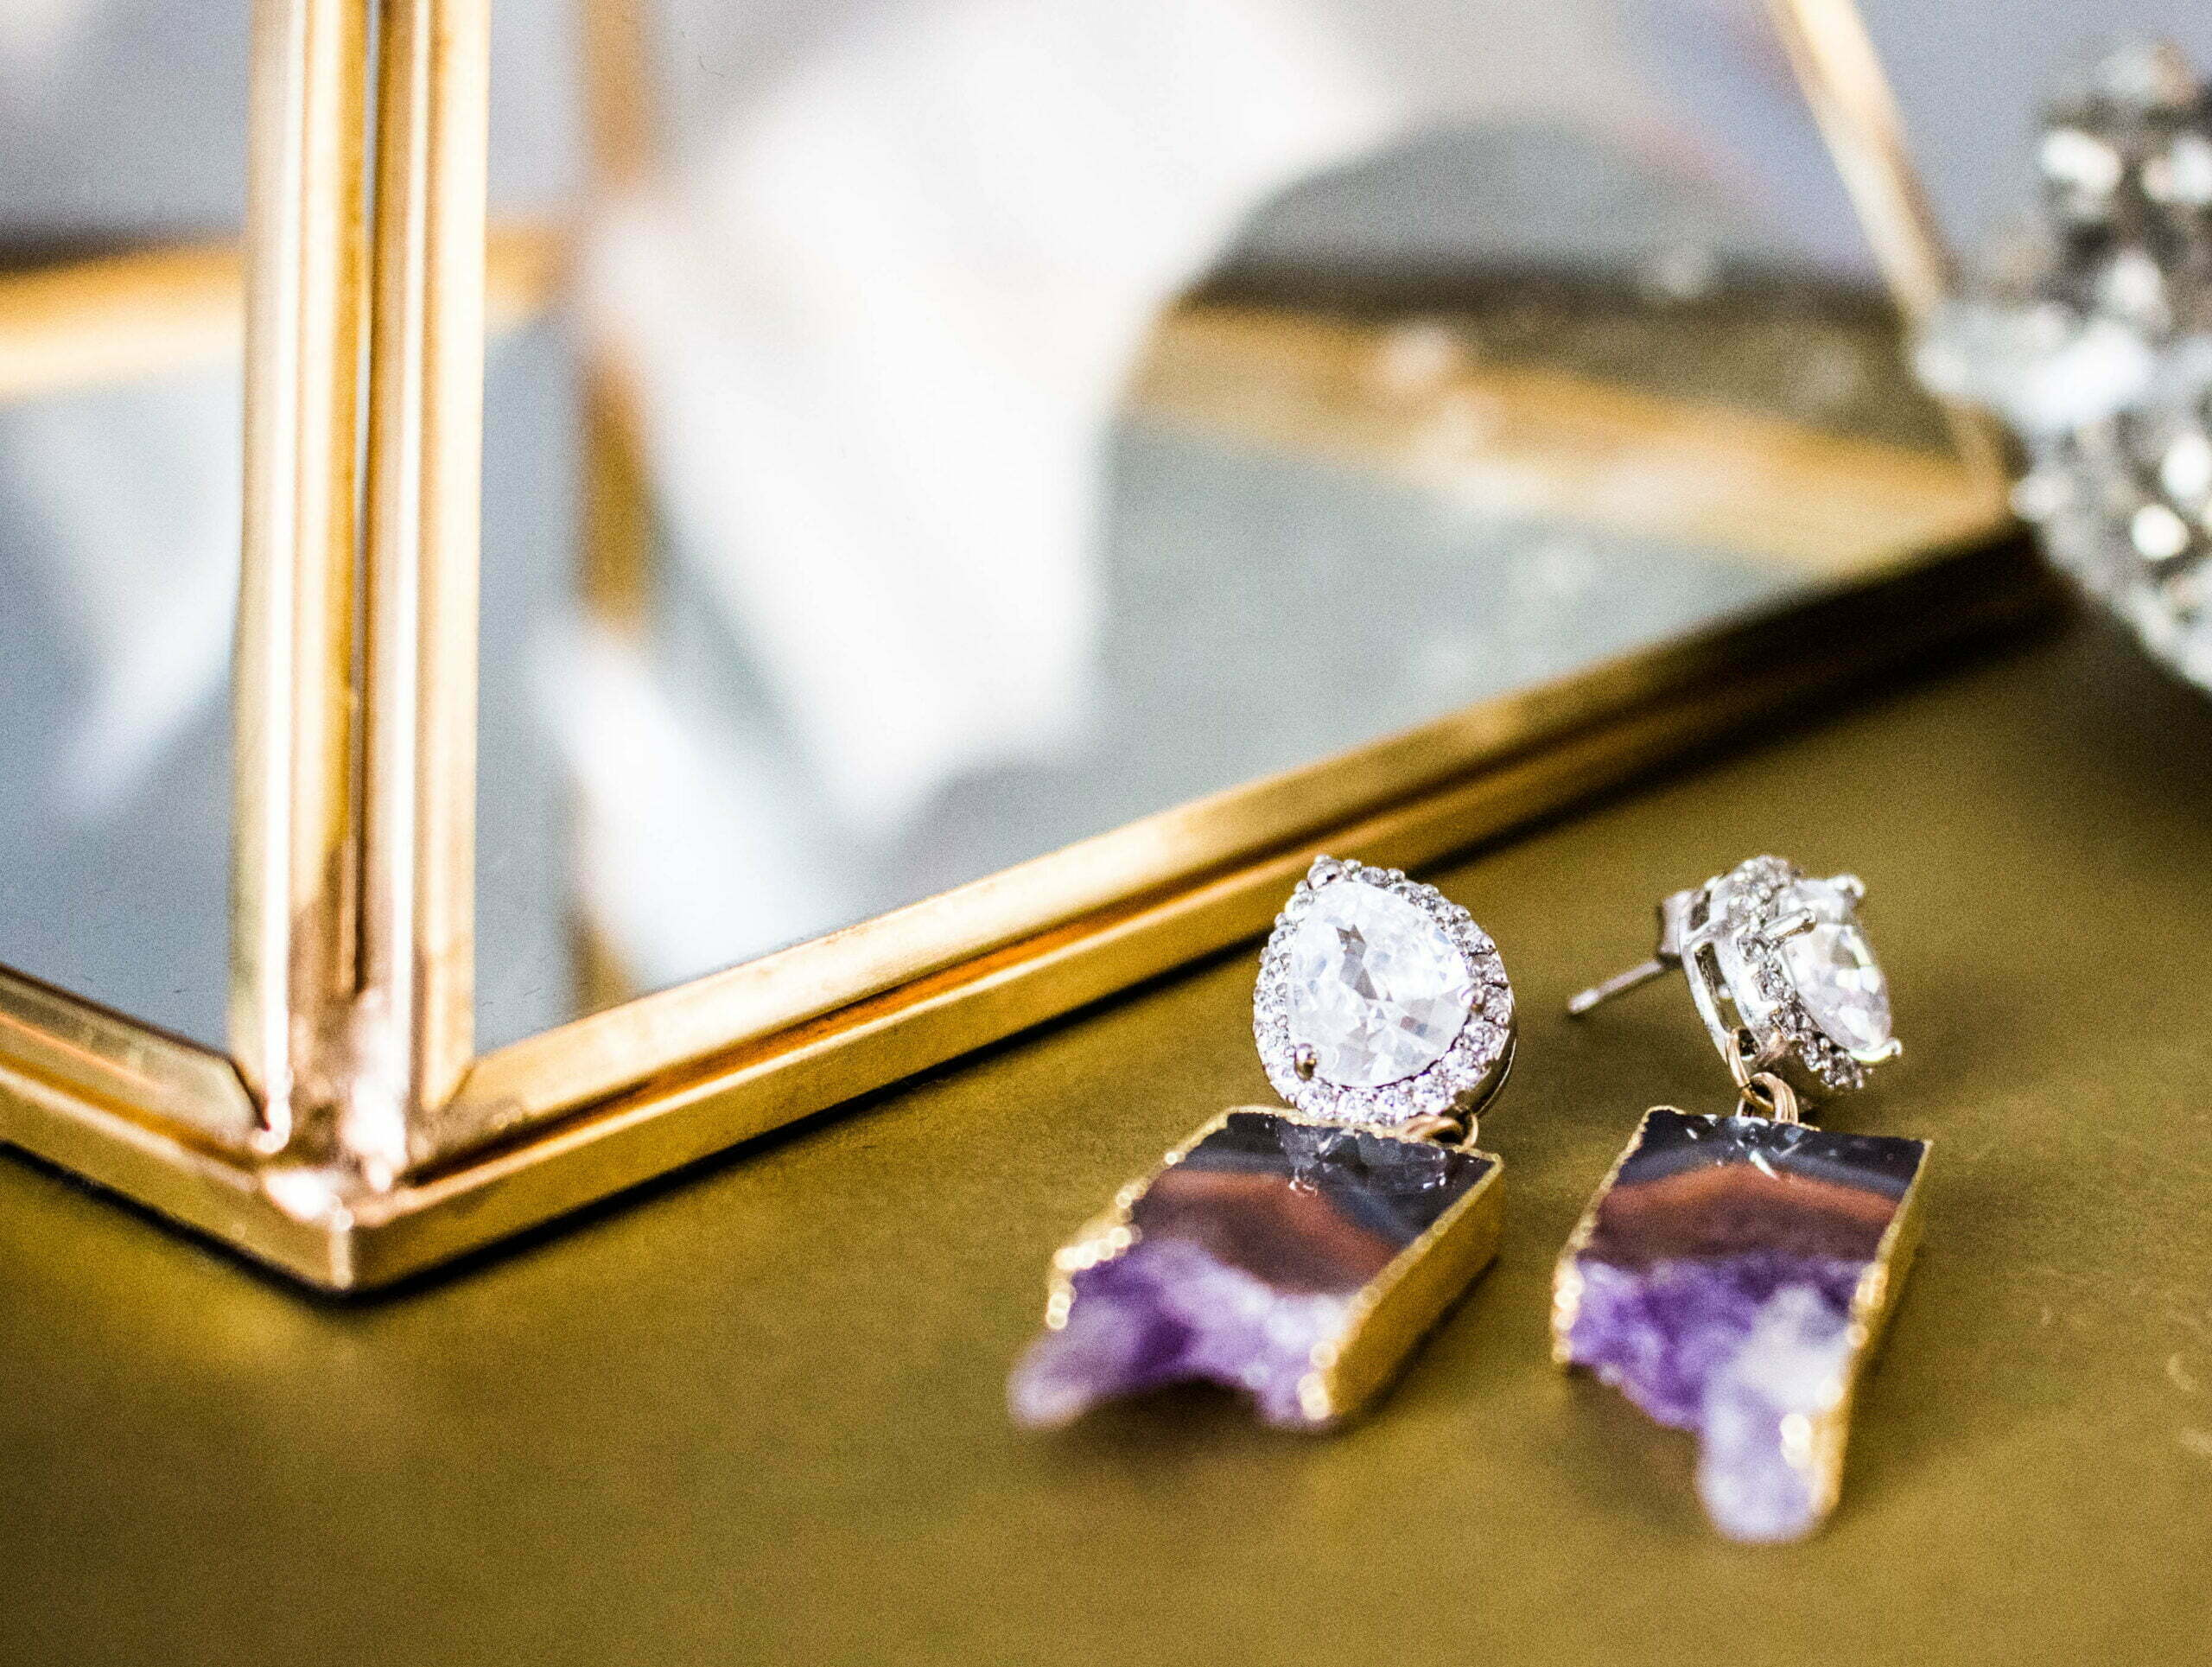 Why Should You Invest In Antique Jewellery